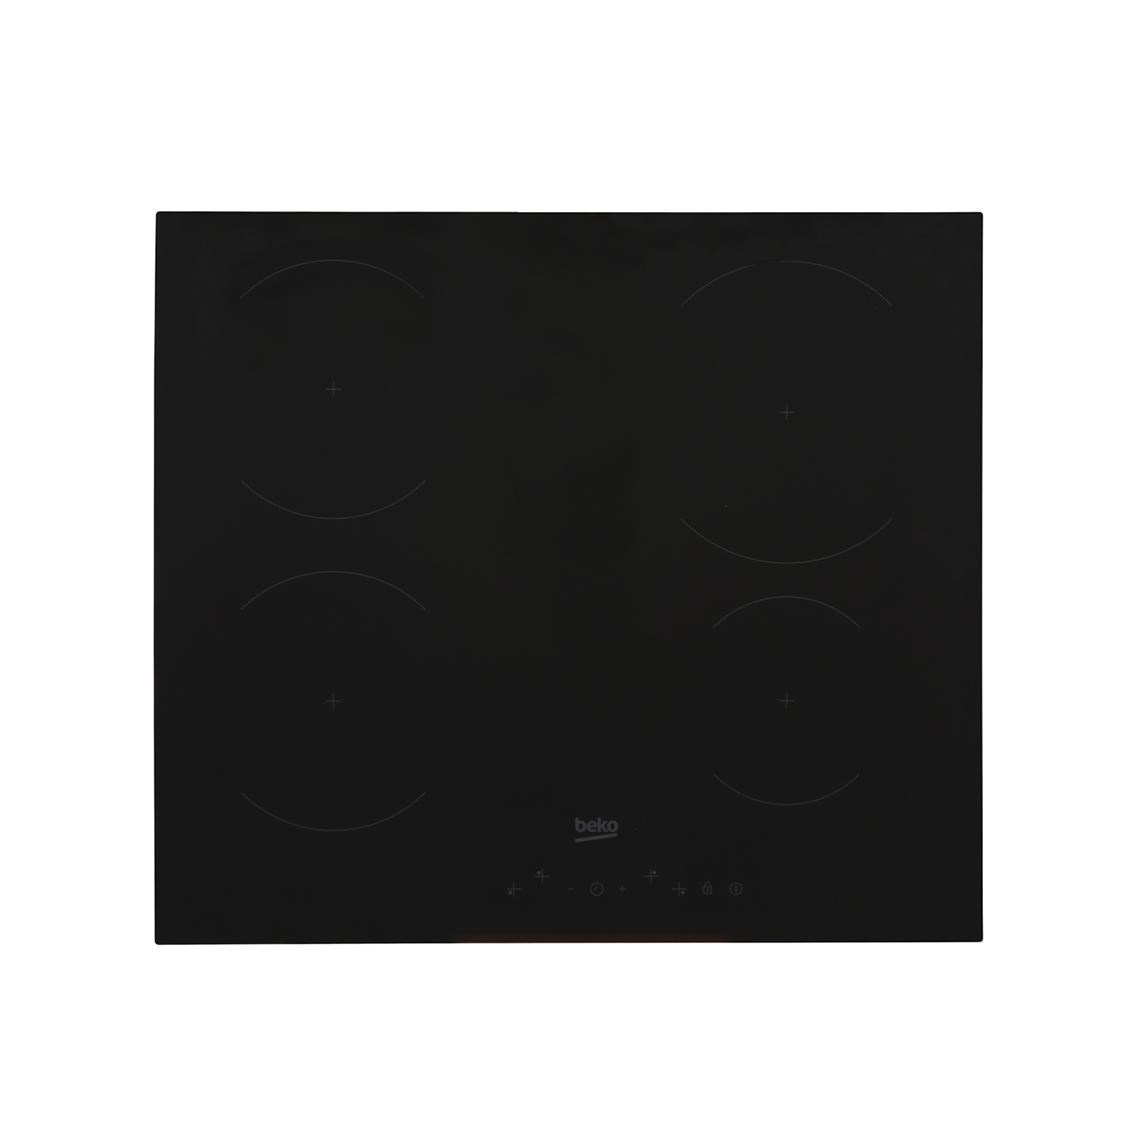 Beko CIHI21B Induction Hob